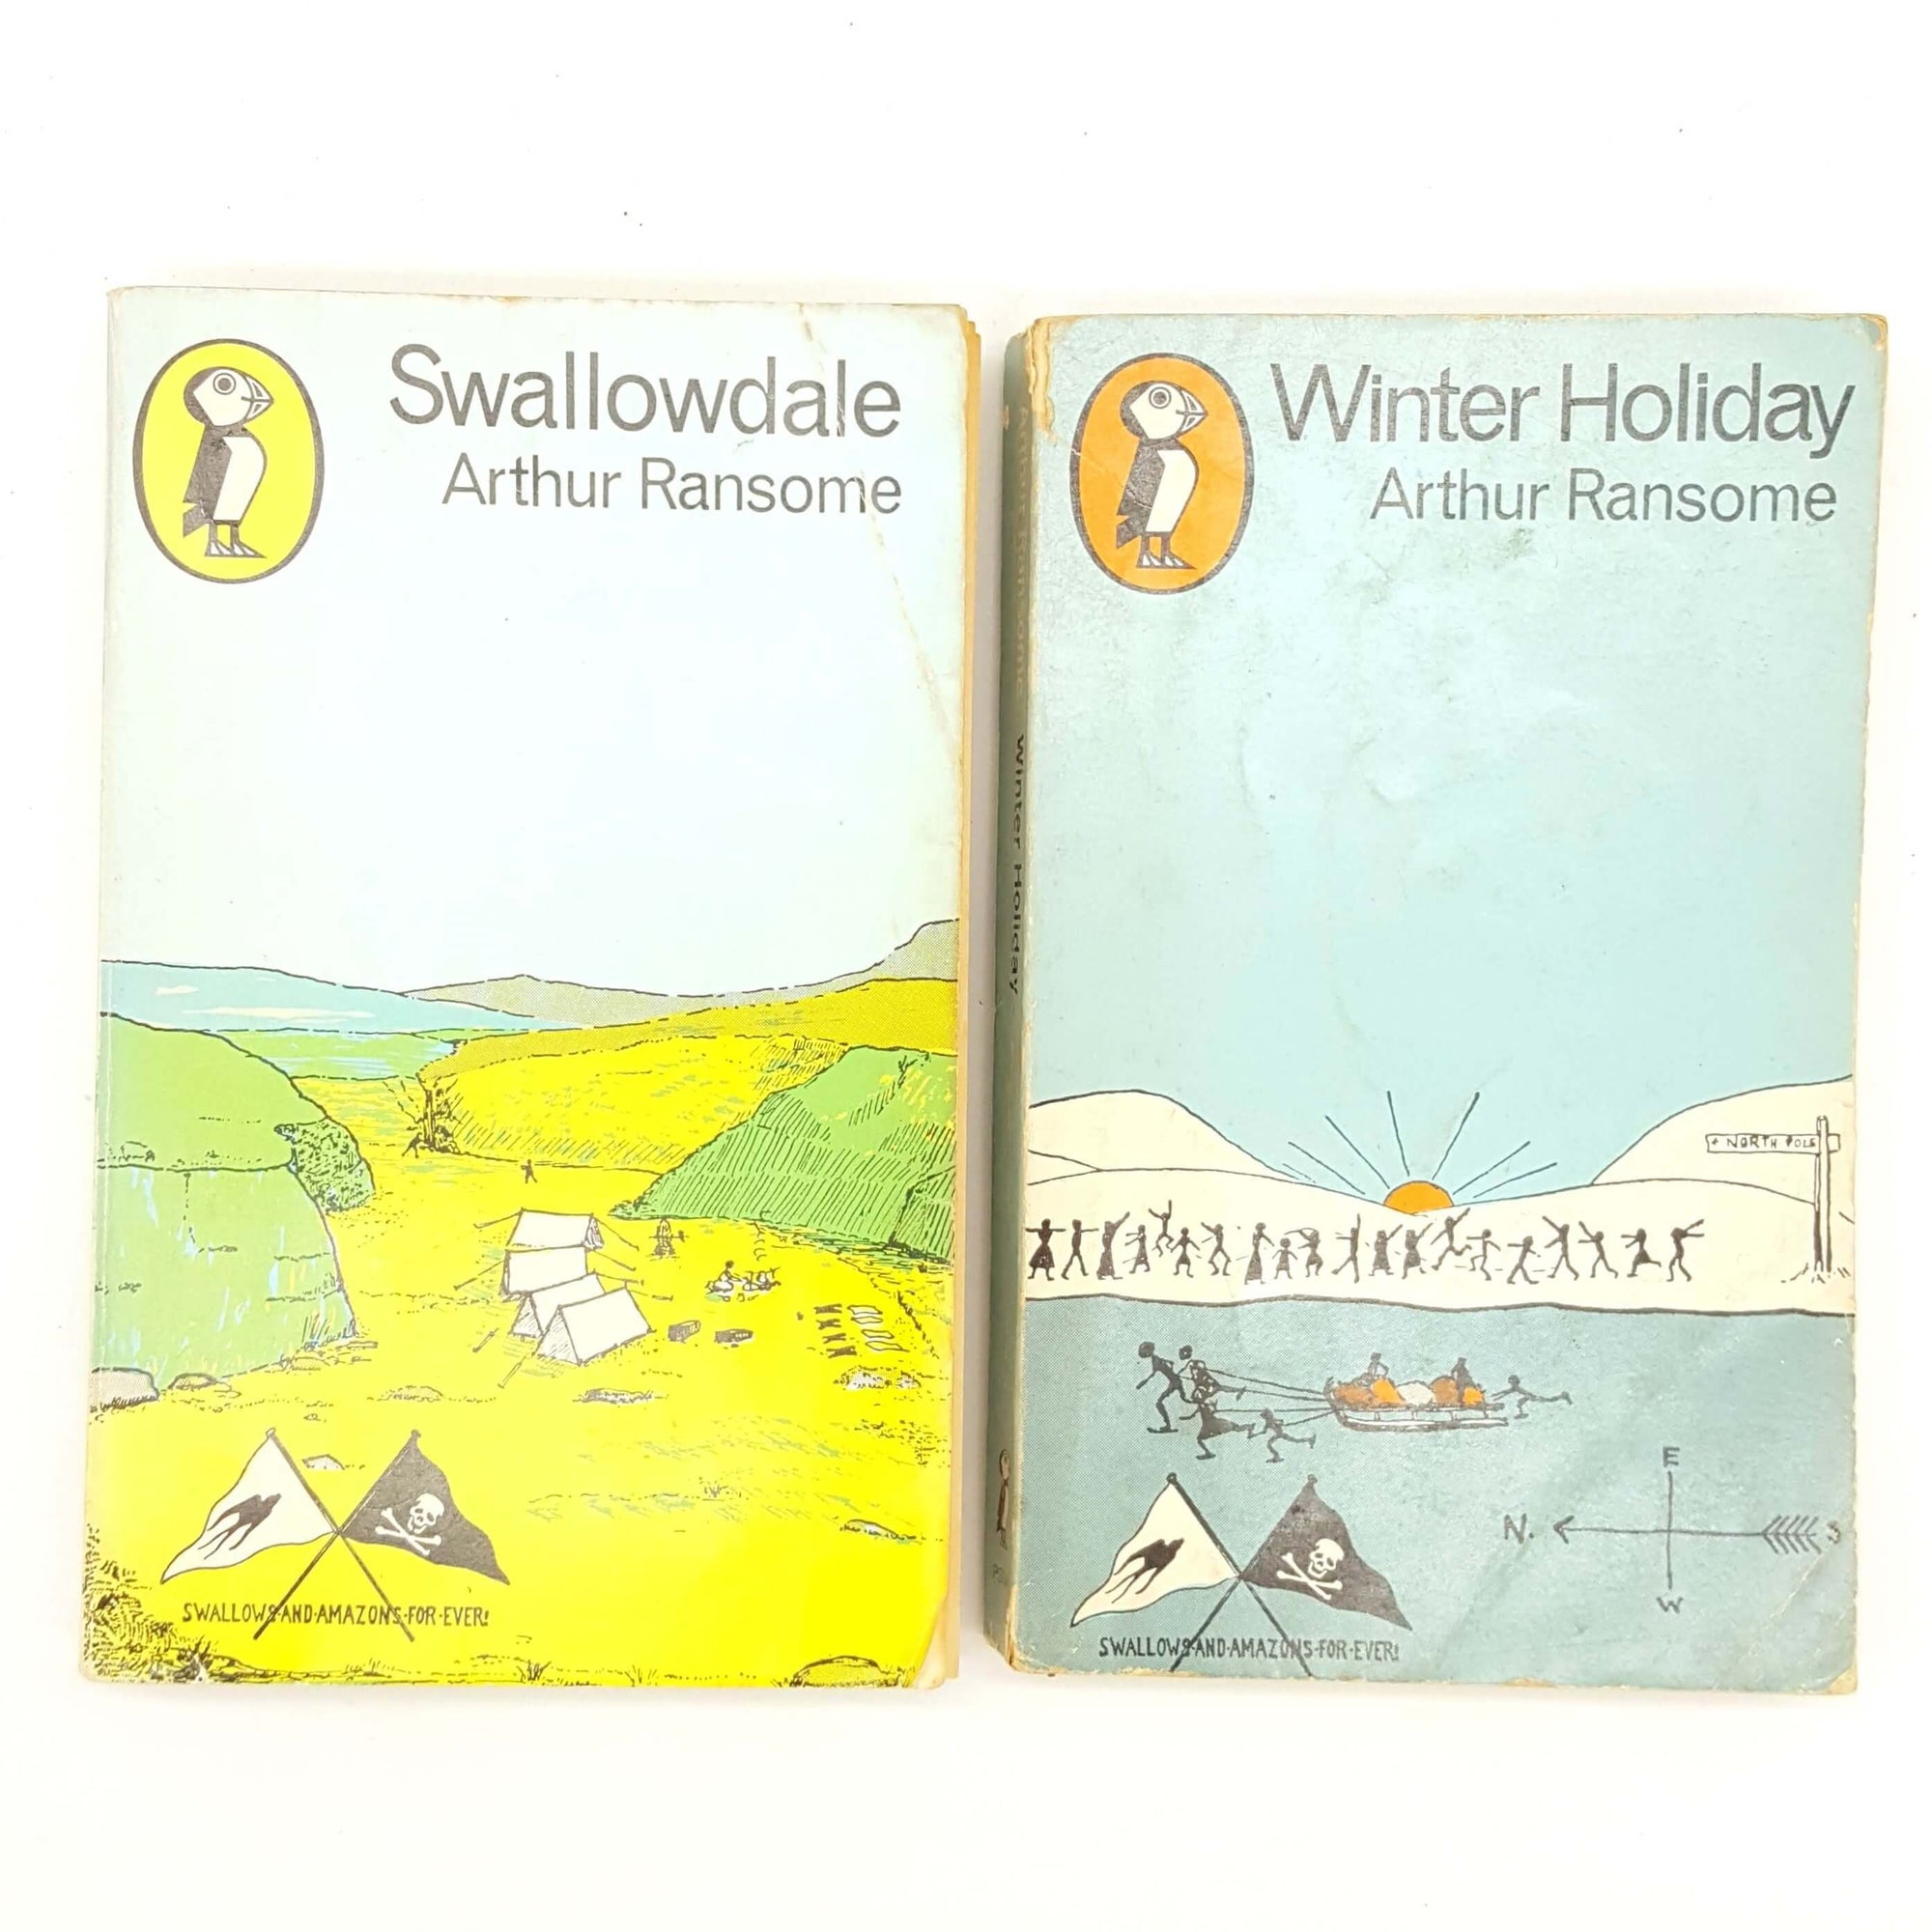 Arthur Ransome's Swallowdale and Winter Holiday c.1970 - Puffin Collection Country House Library